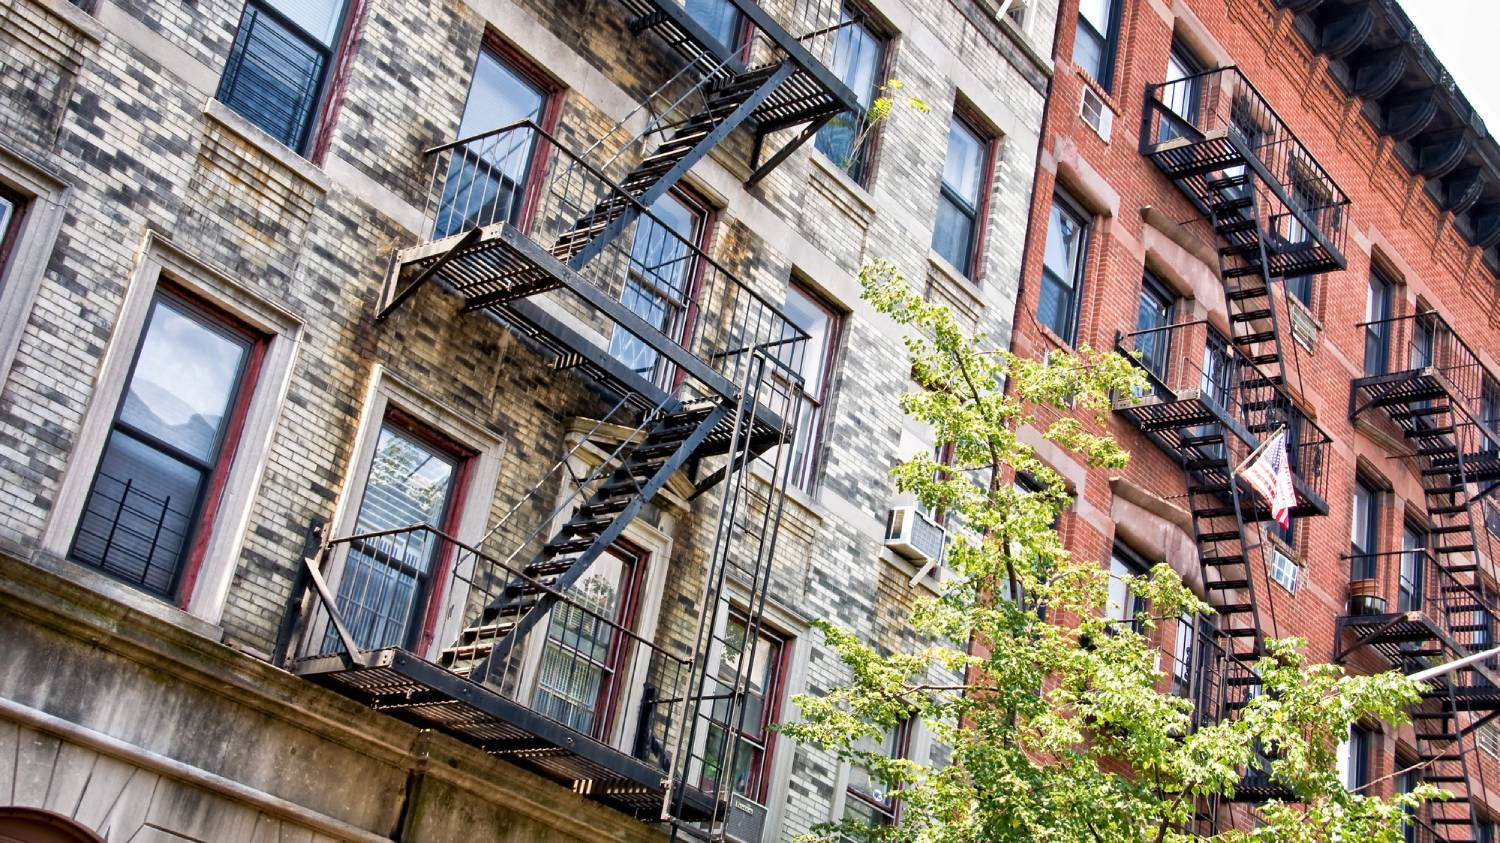 Greenwich Village - Things To Do In New York City